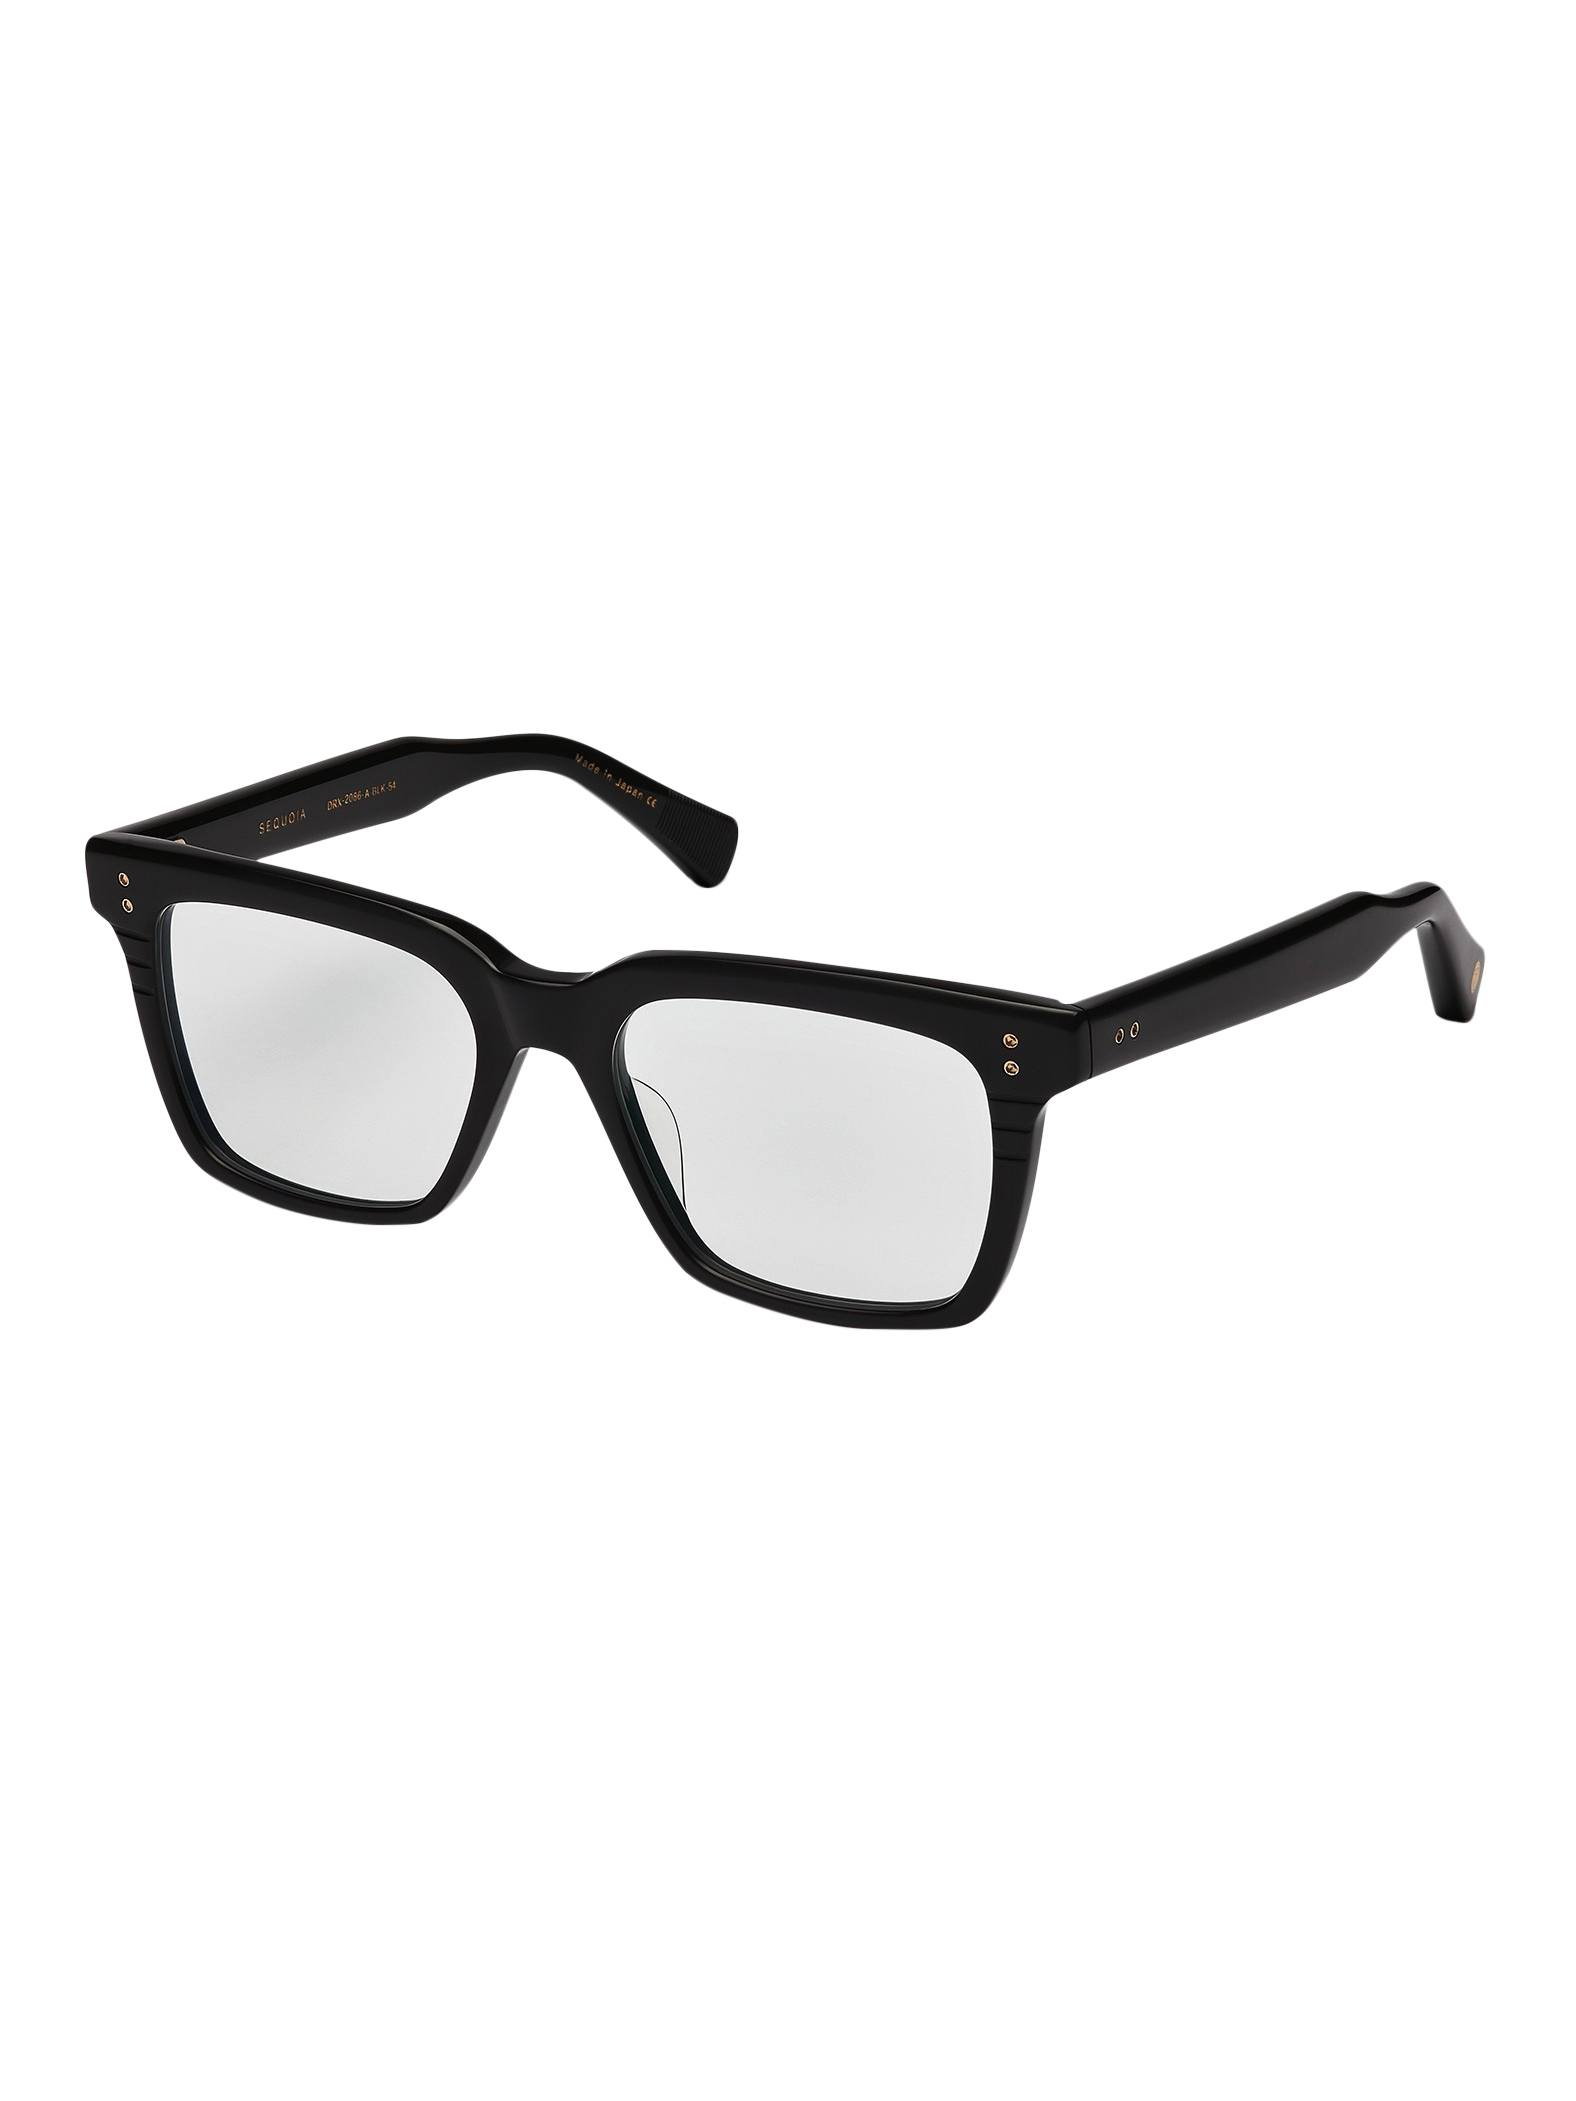 Optical Frame - Dita Sequoia DRX-2086A In Black Glasses